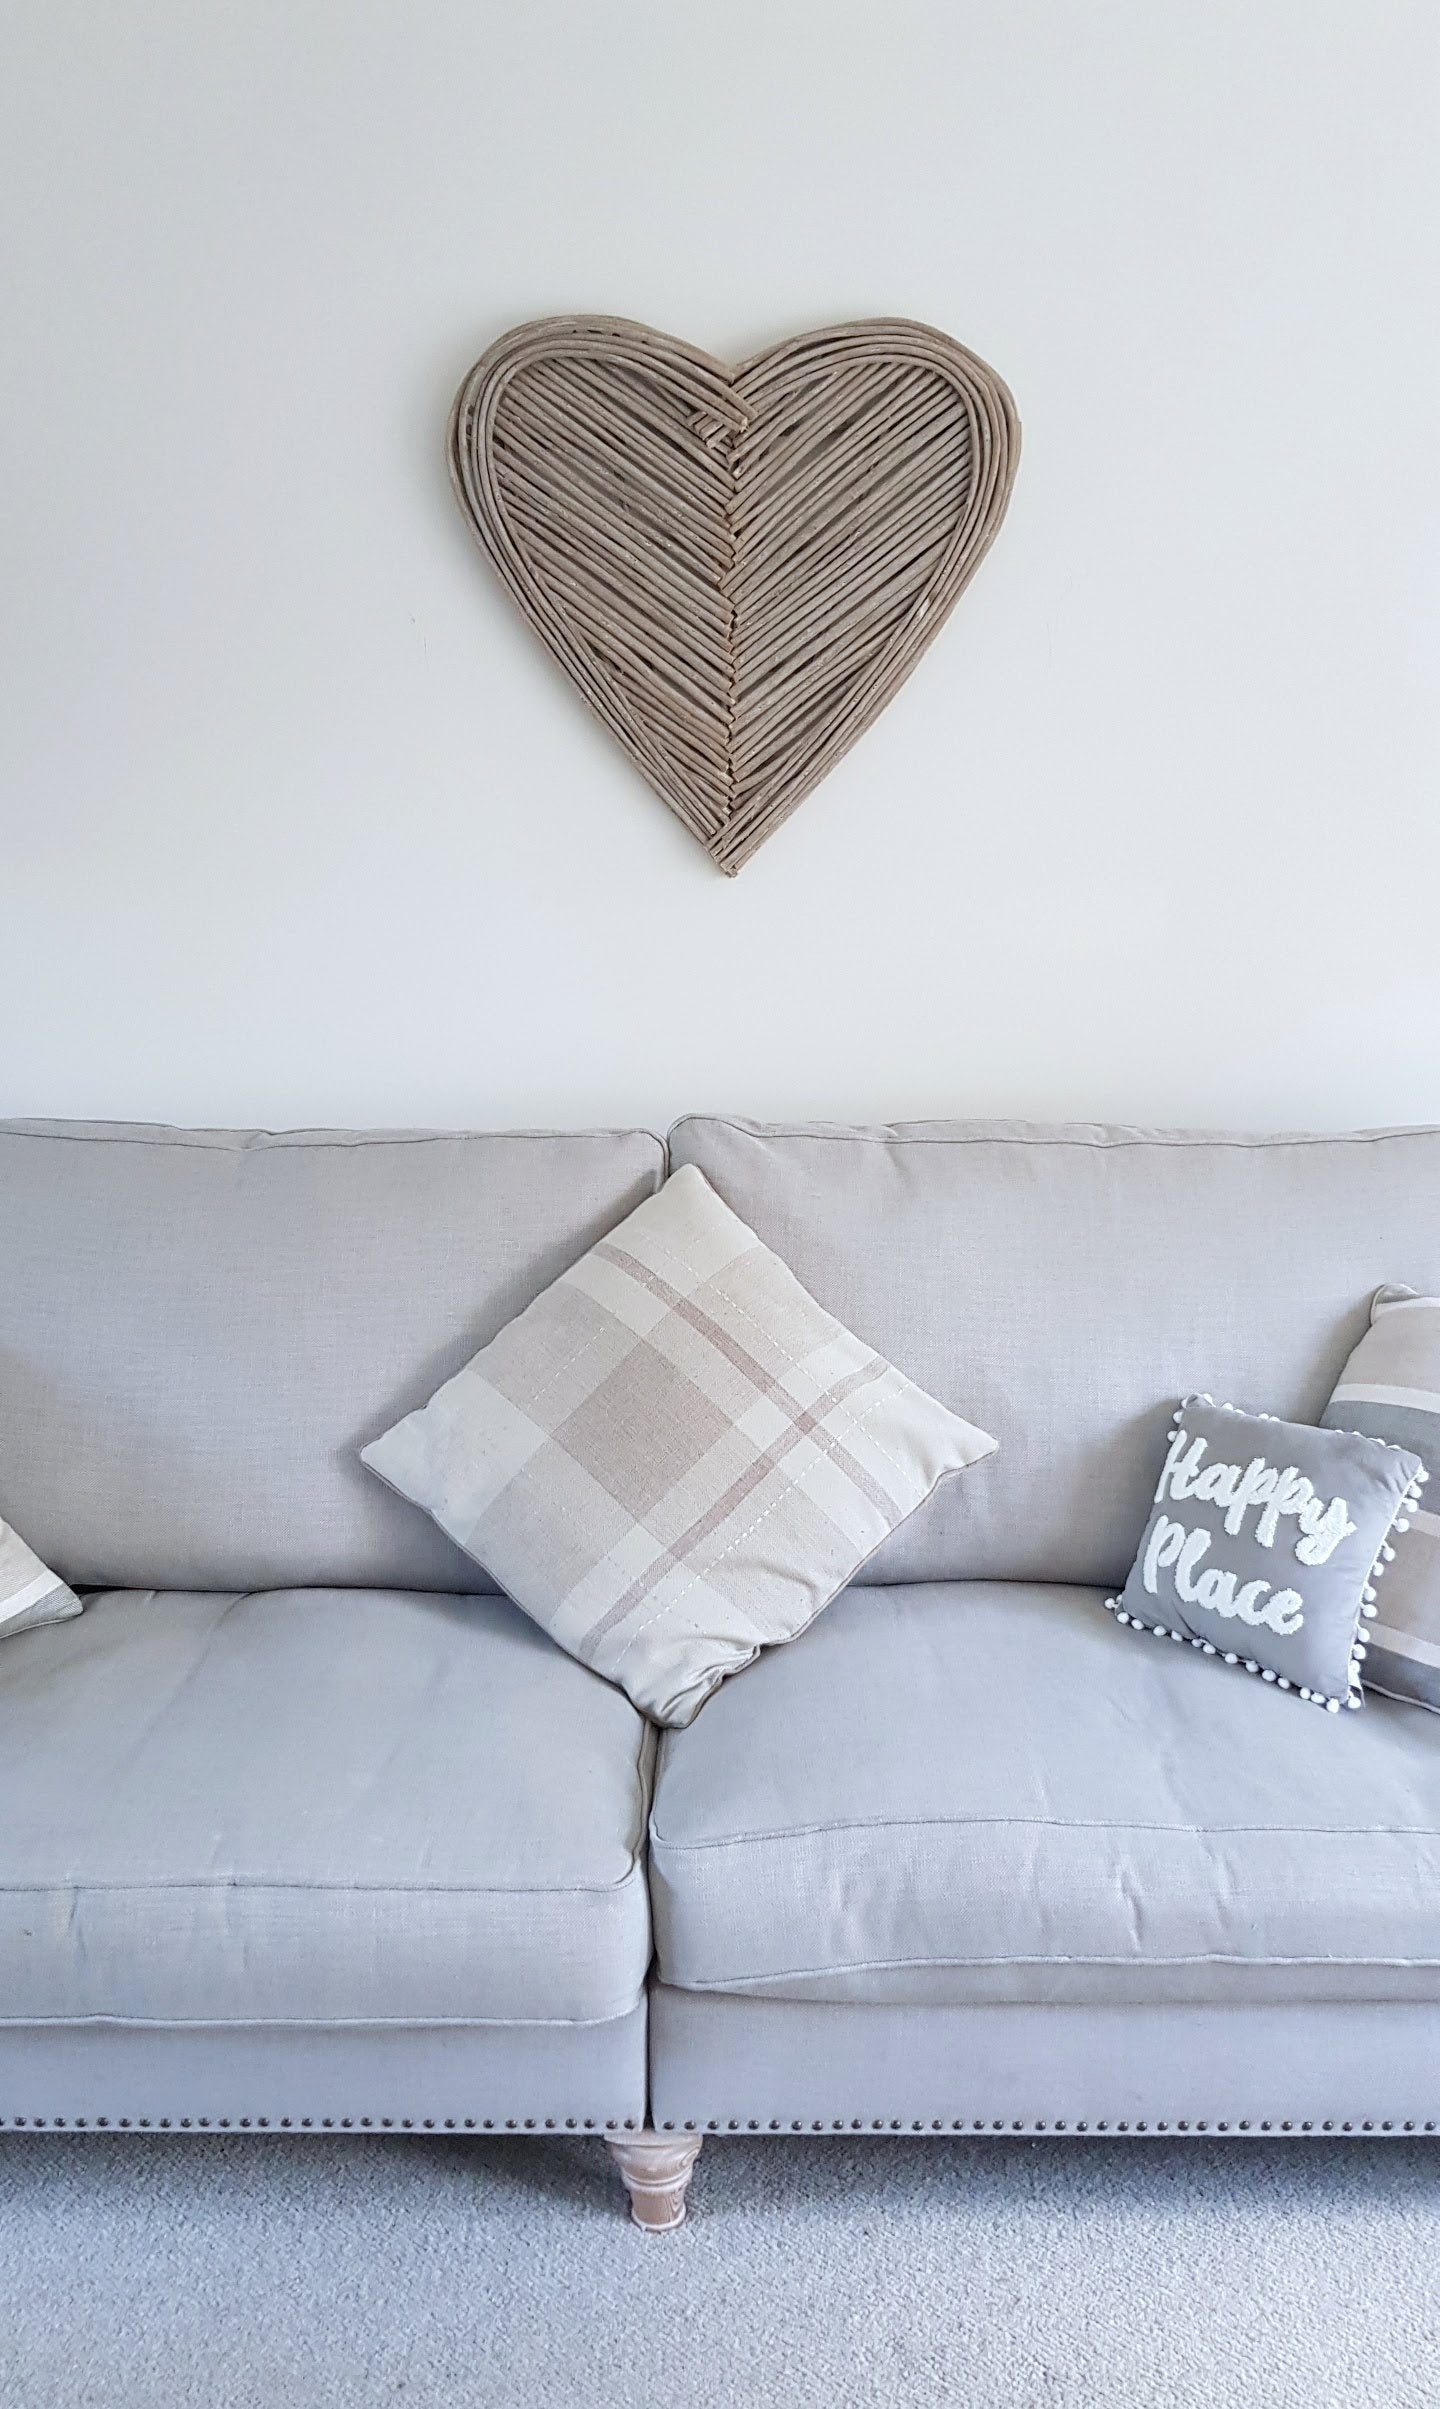 Handmade Wicker Heart Wall Art Indoor/Outdoor - 70cm x 70cm